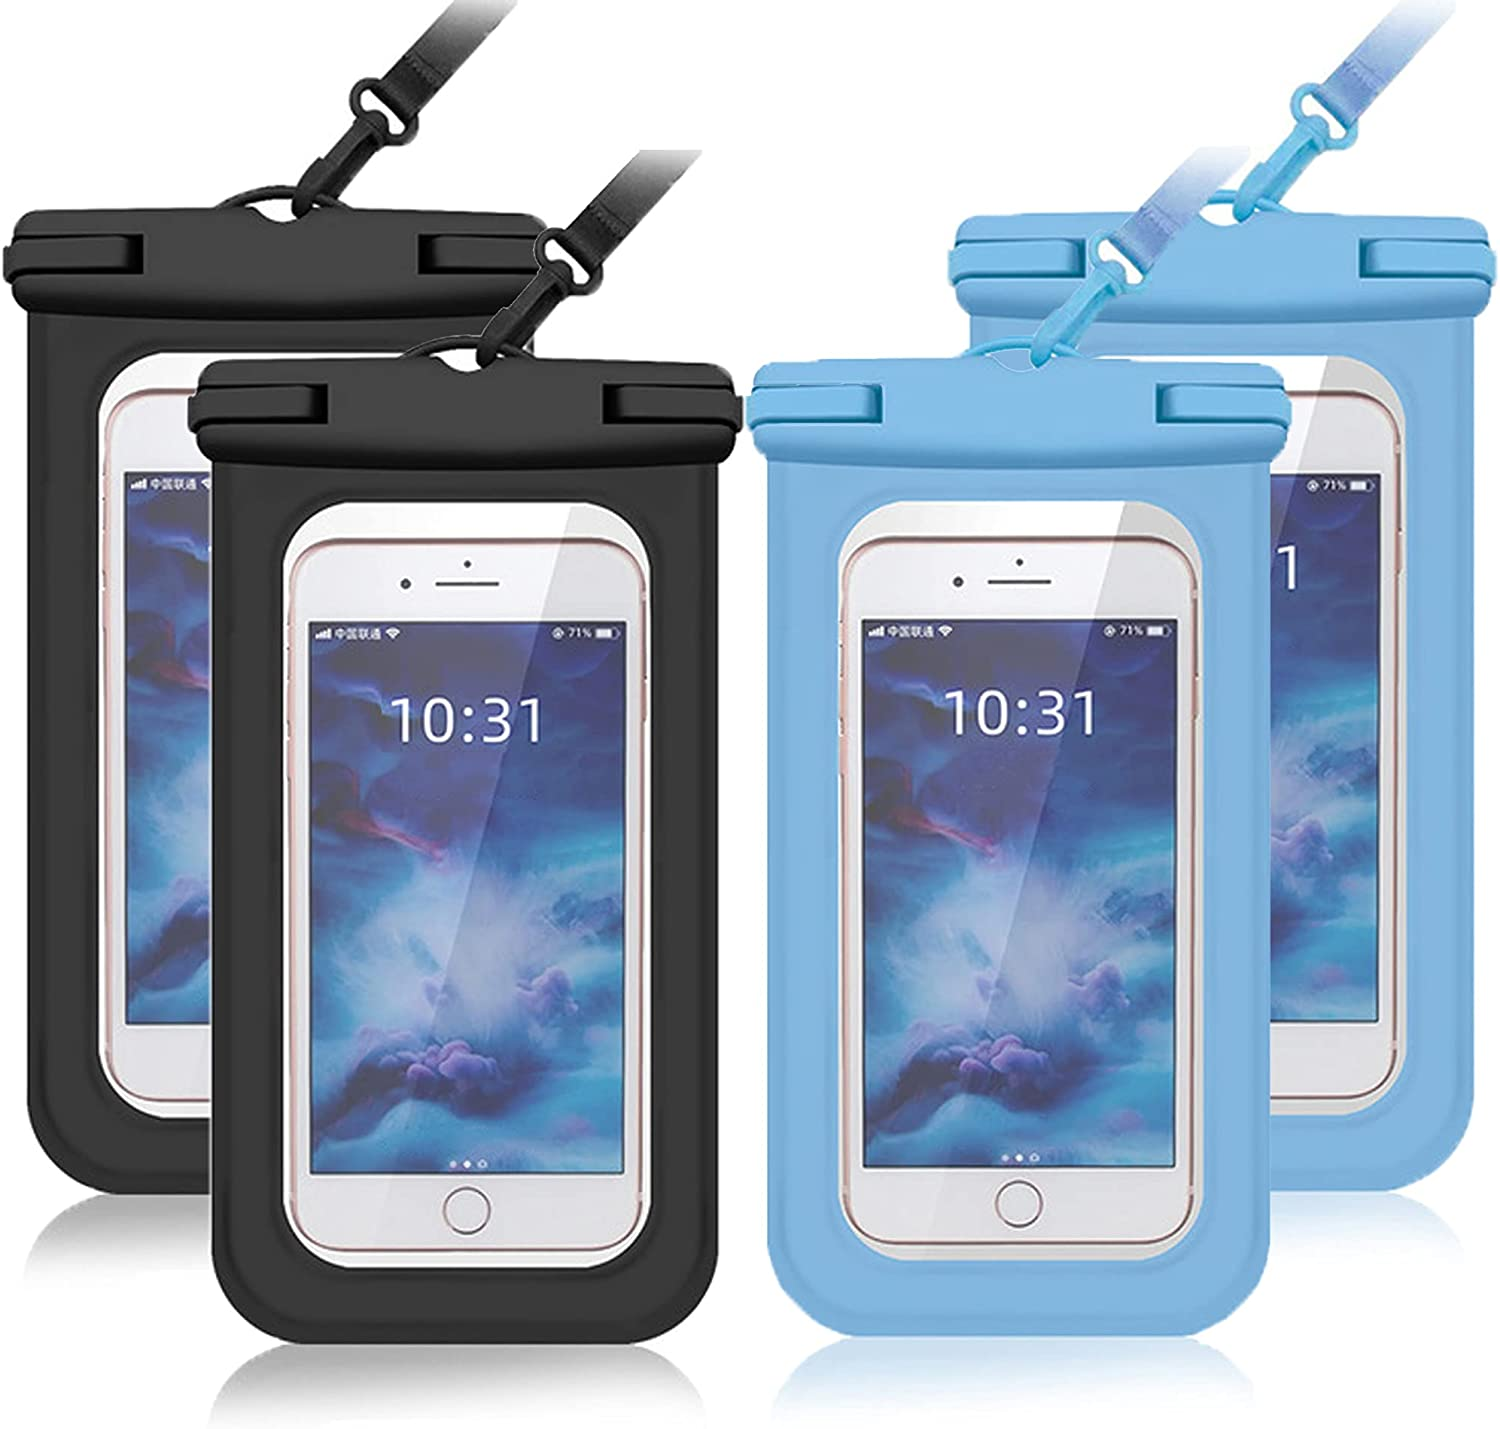 Universal Waterproof Phone Case, Waterproof Phone Pouch for iPhone 12 Pro 11 Pro Max XS Max XR X 8 7 Samsung Galaxy s10/s9 Google Pixel 2 HTC Up to 6.9